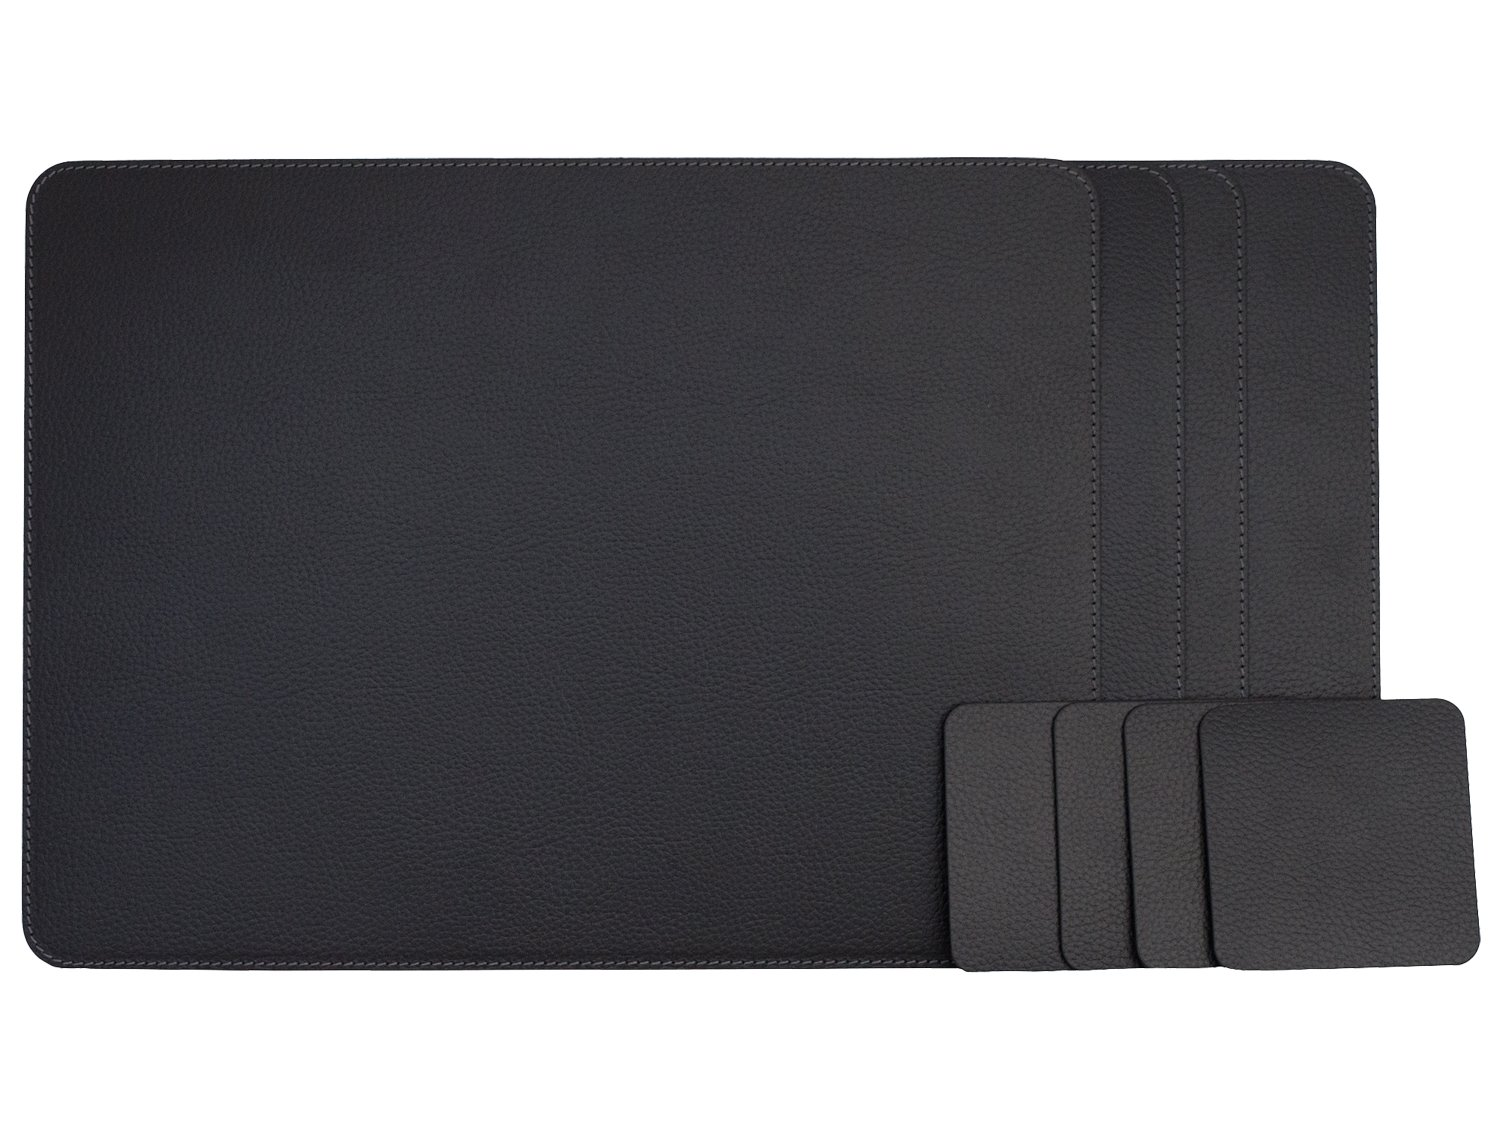 Nikalaz Set of Black Placemats and Coasters, 4 Table Mats and 4 Coasters, Recycled Leather, Place Mats 18'' x 13'' and Coasters 3.9'' x 3.9'', Dining table set